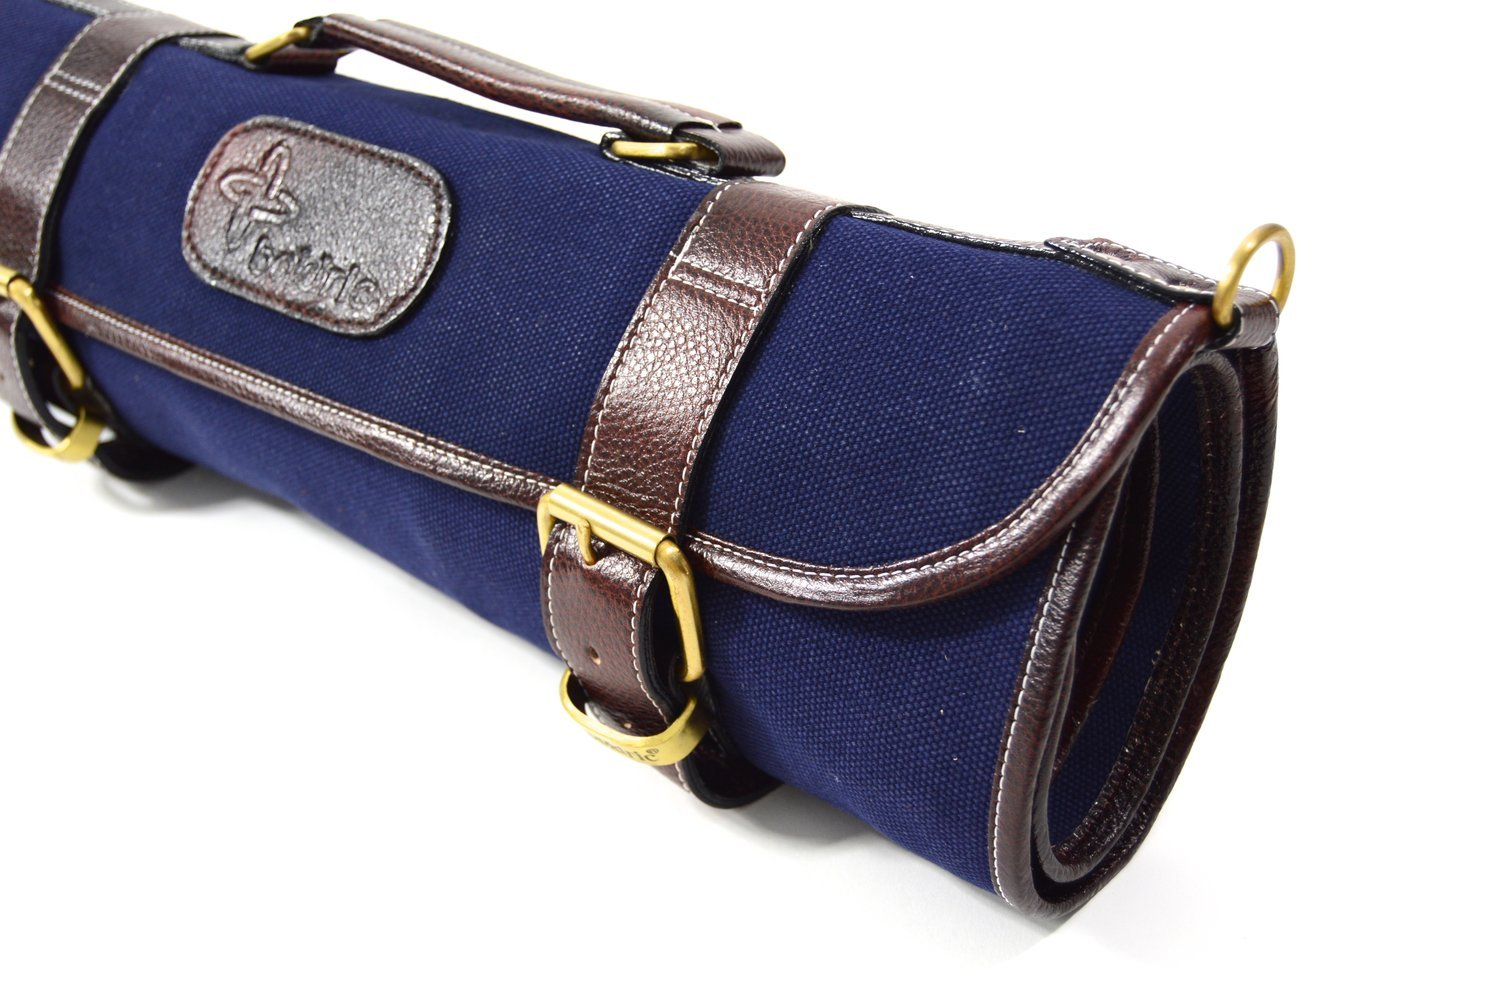 Boldric 9 Pocket Knife Bag, Roll Up Canvas with Handle and Shoulder Strap, Top Quality Portable Chef Knives Case Storage Bag, Navy, 18-inch